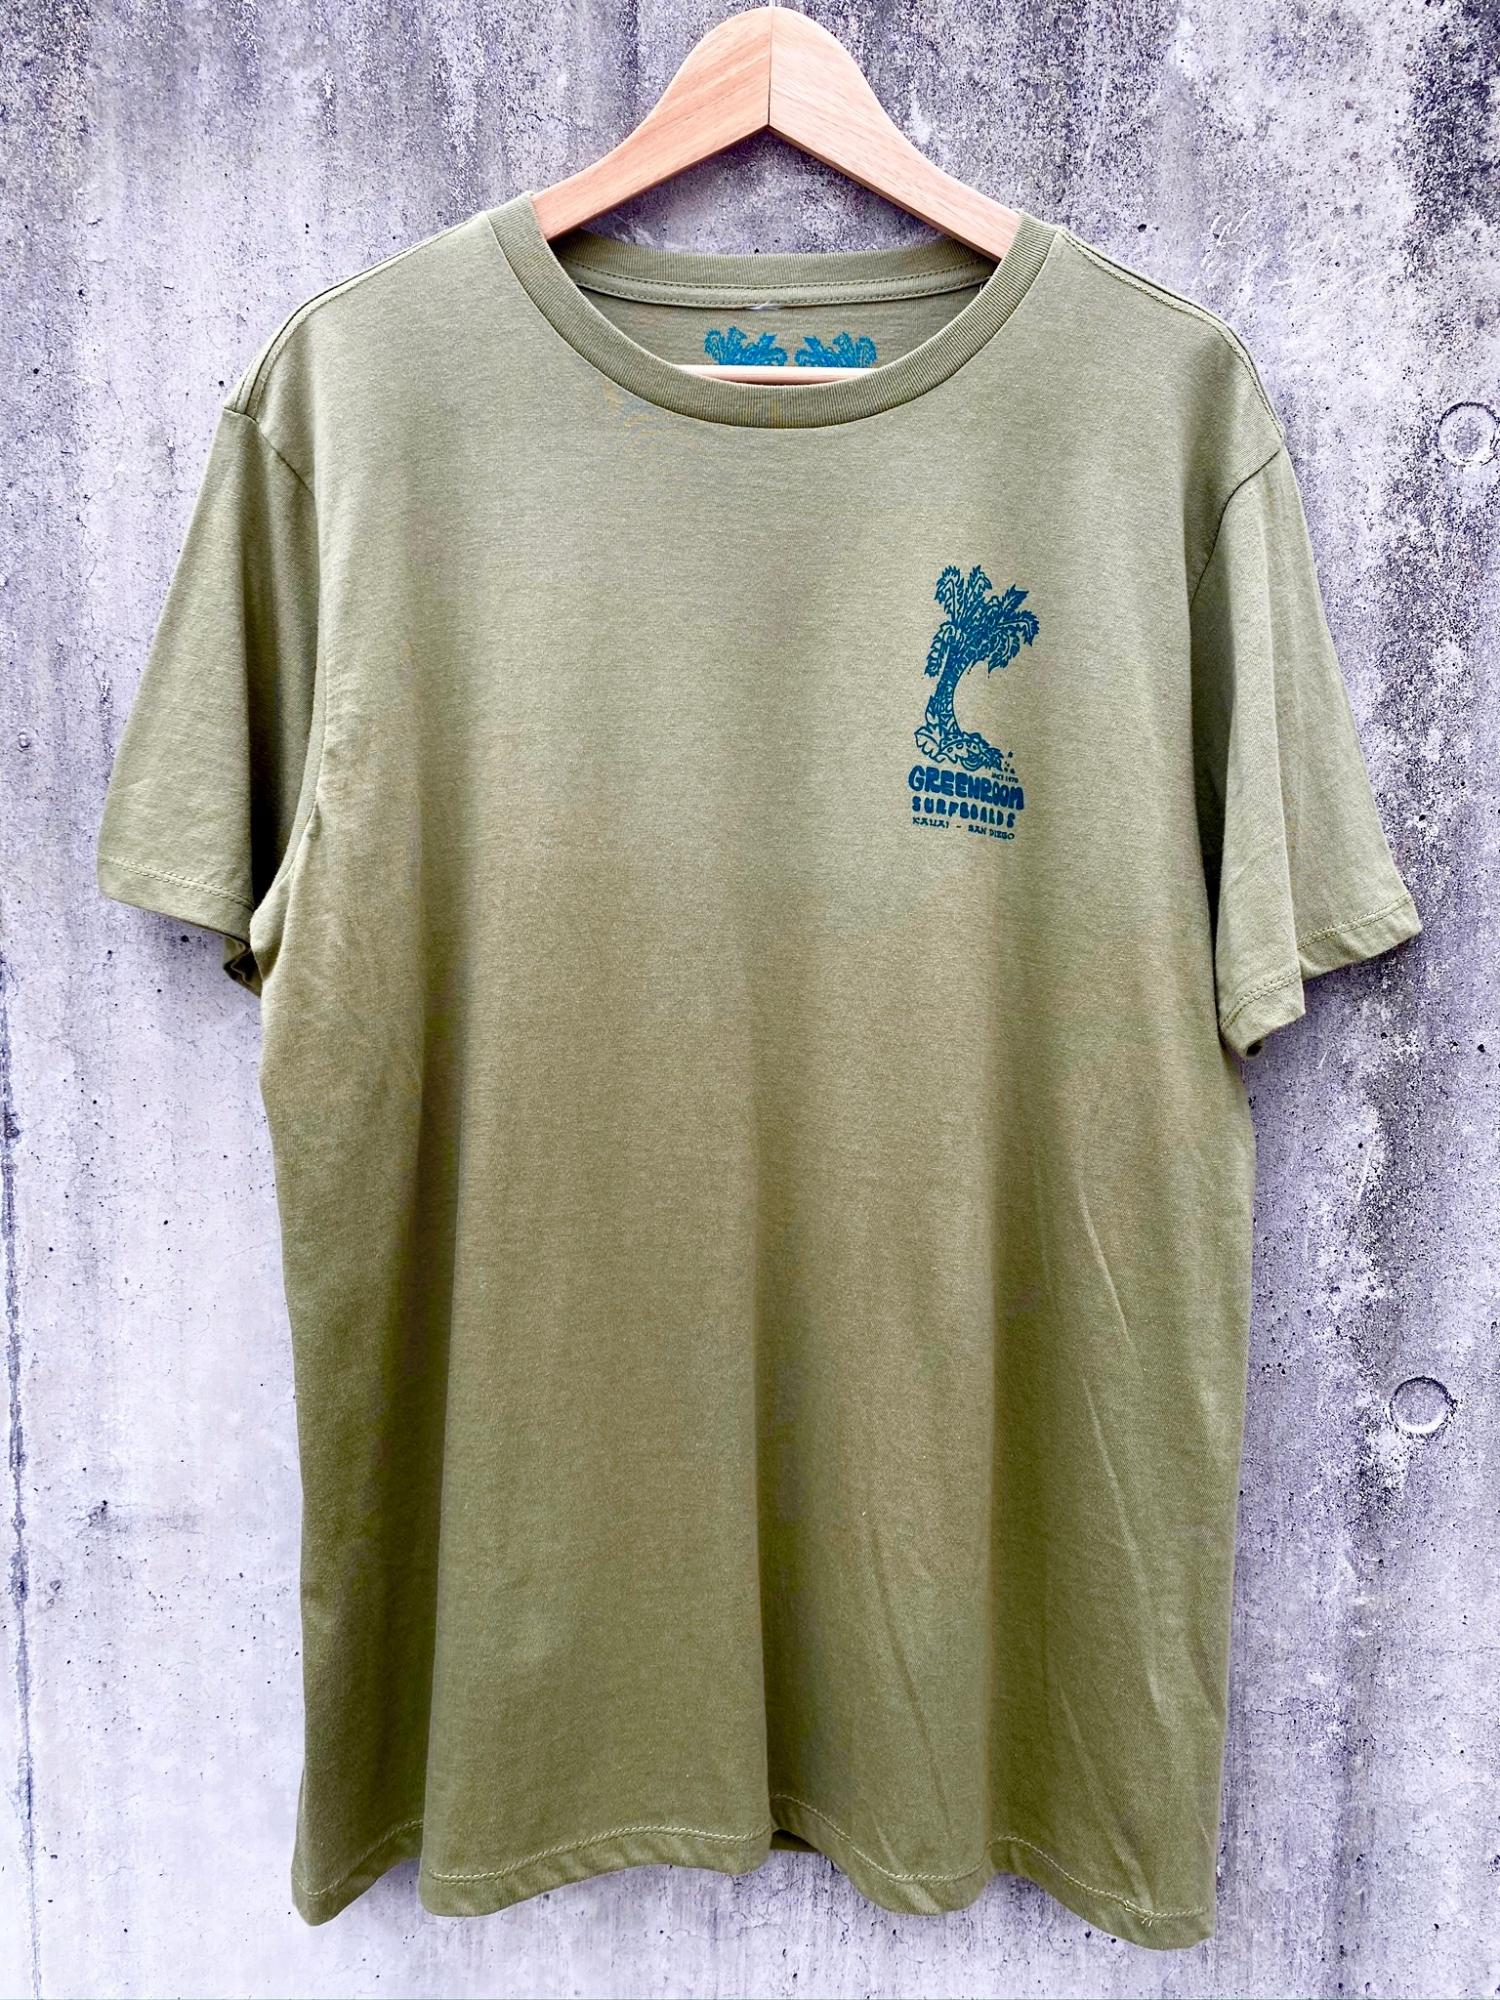 Pavel Surfboards Greenroom T-Shirt